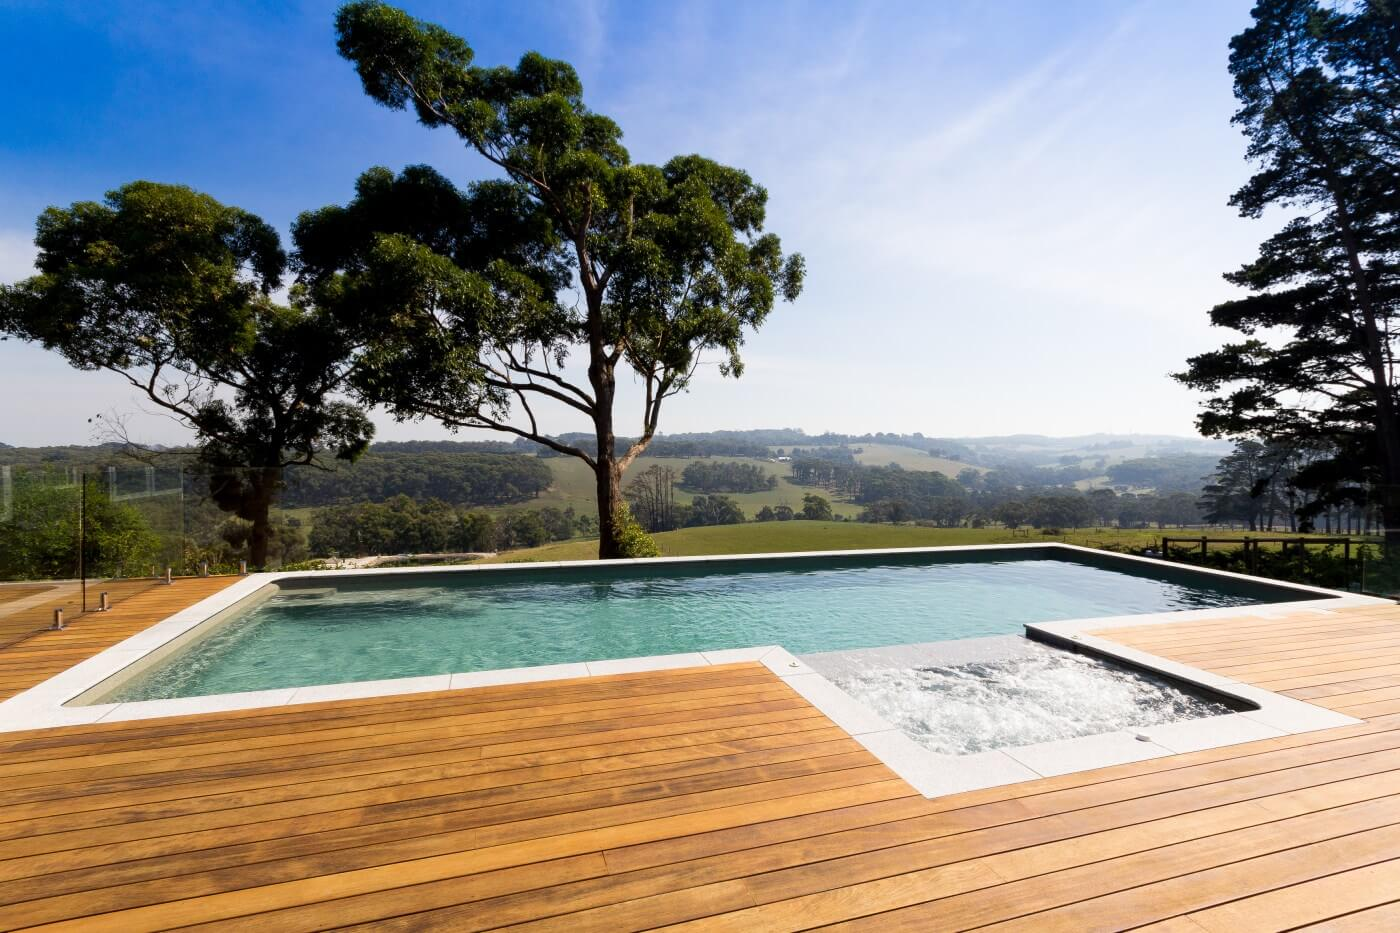 Self cleaning above ground pool and spa combo Viridian cololur Arthurs Creek VIC 8